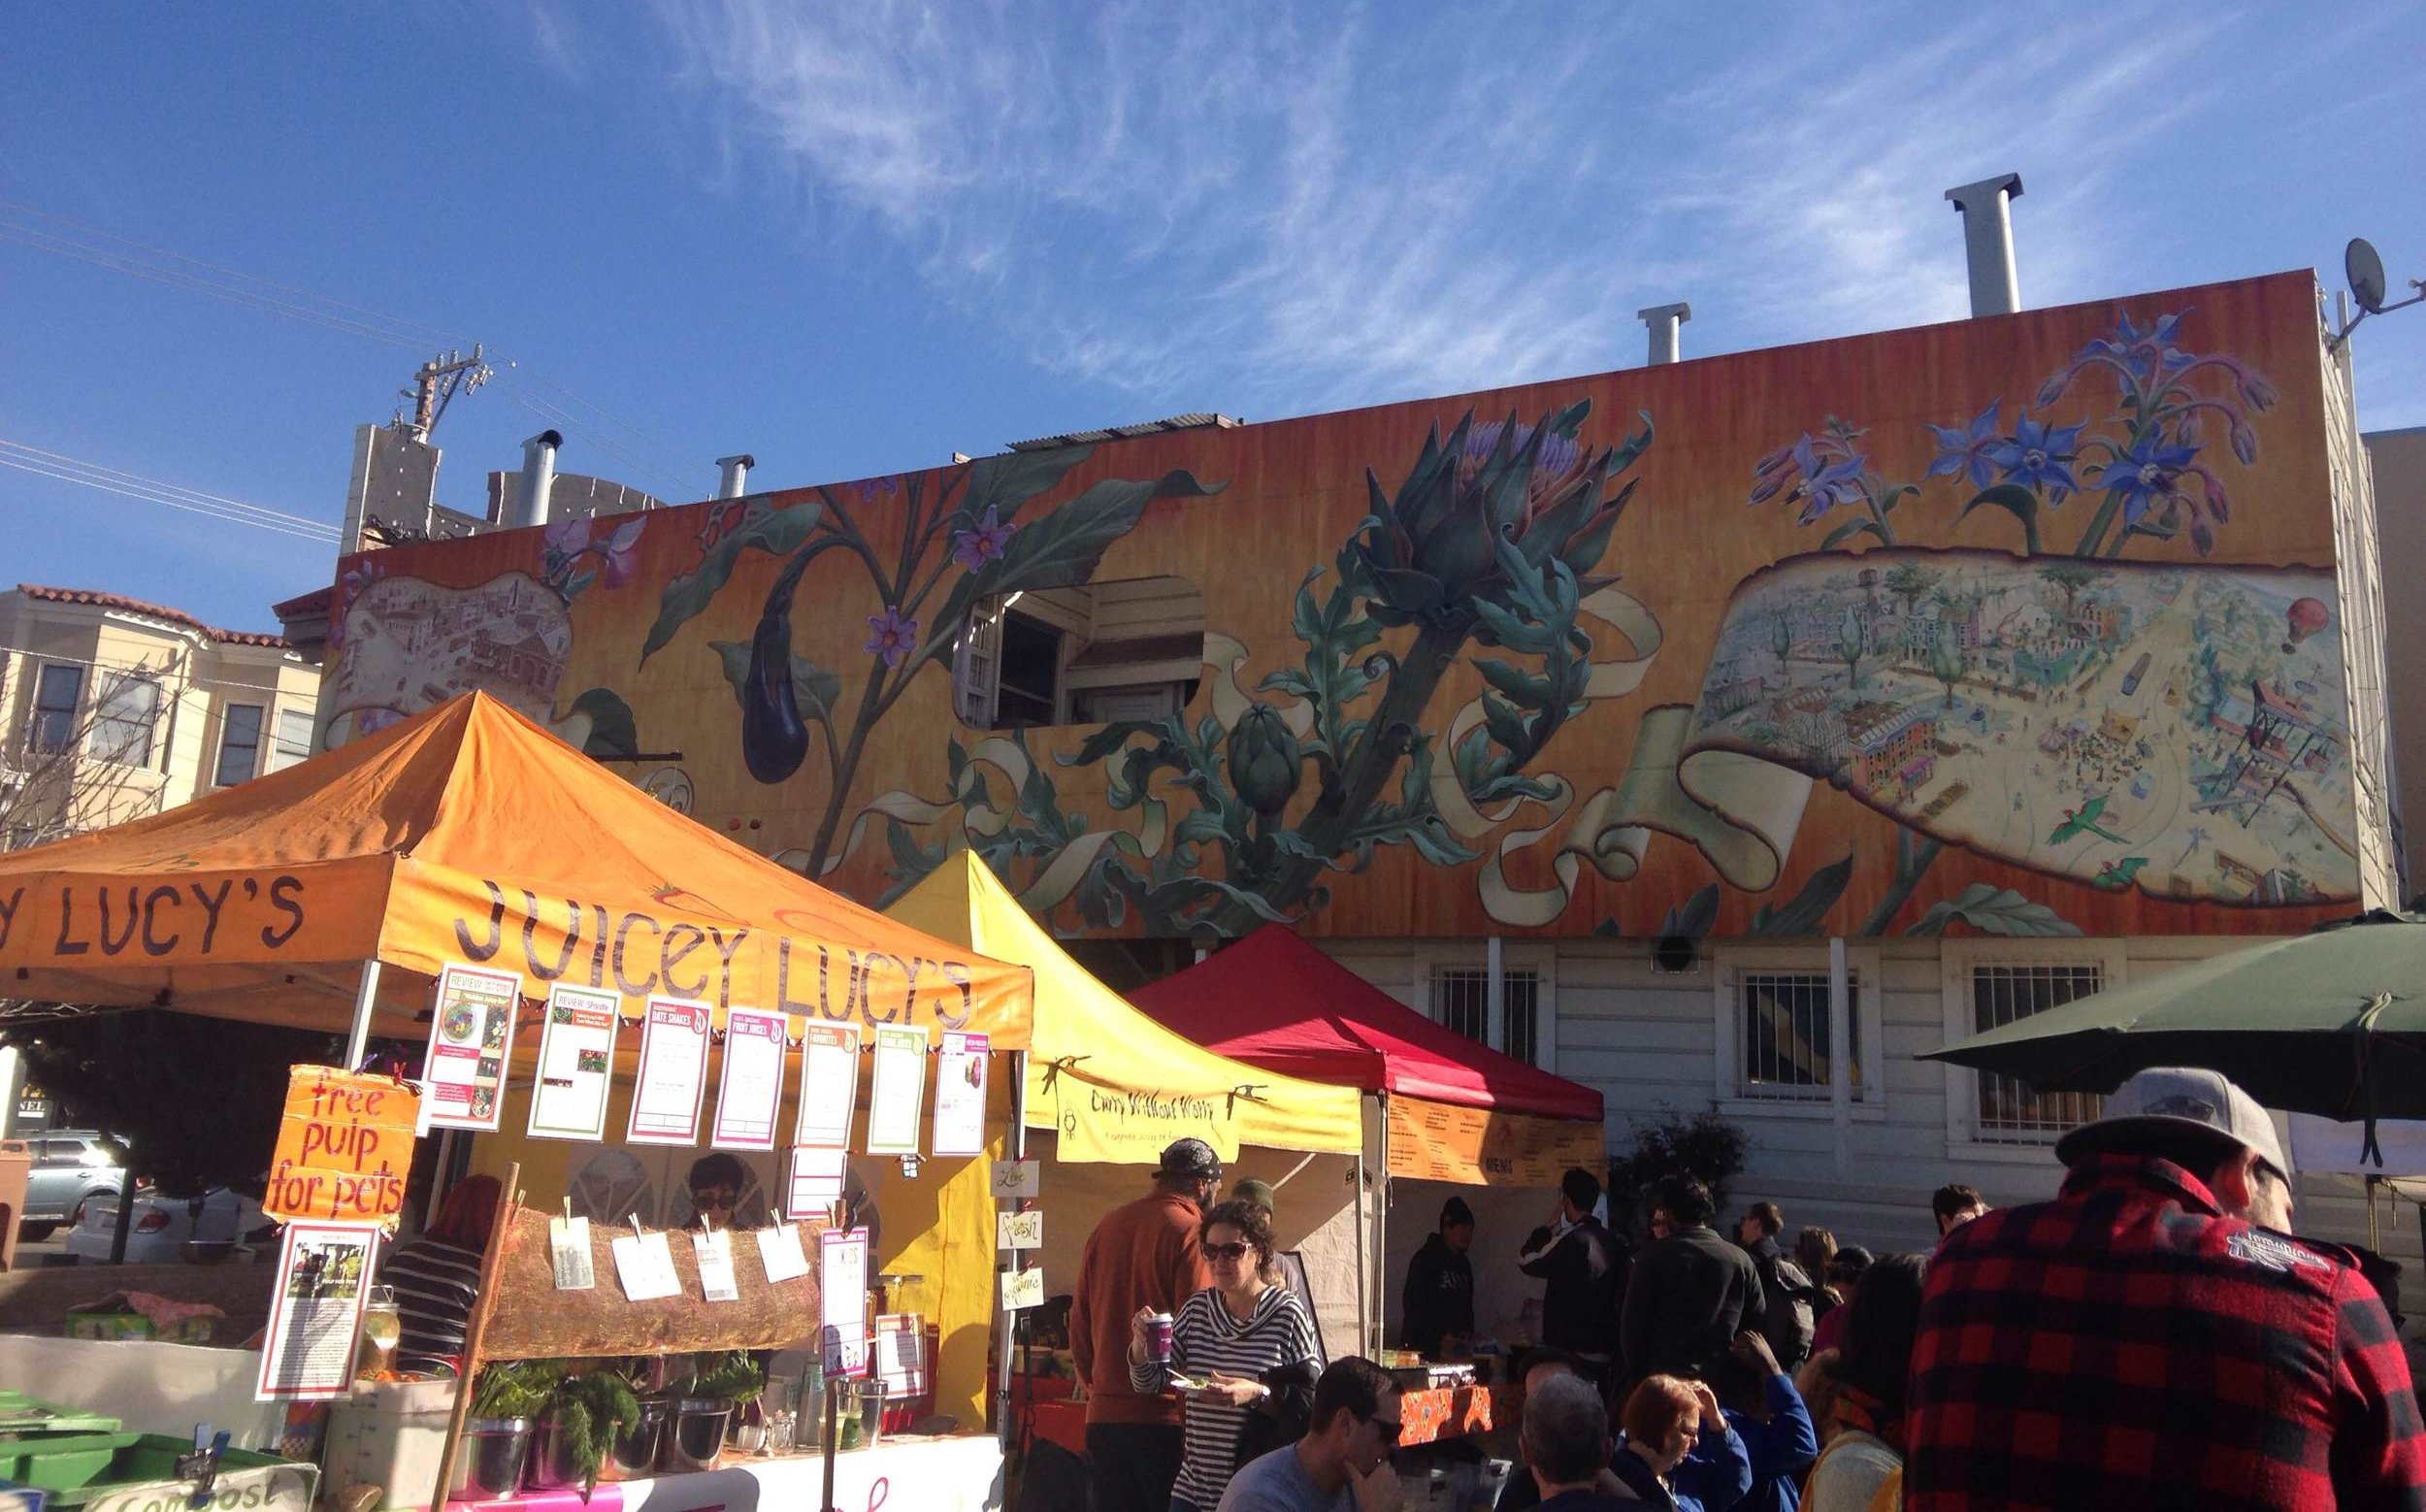 Residents gather at the Noe Valley Farmer's Market every Saturday morning.